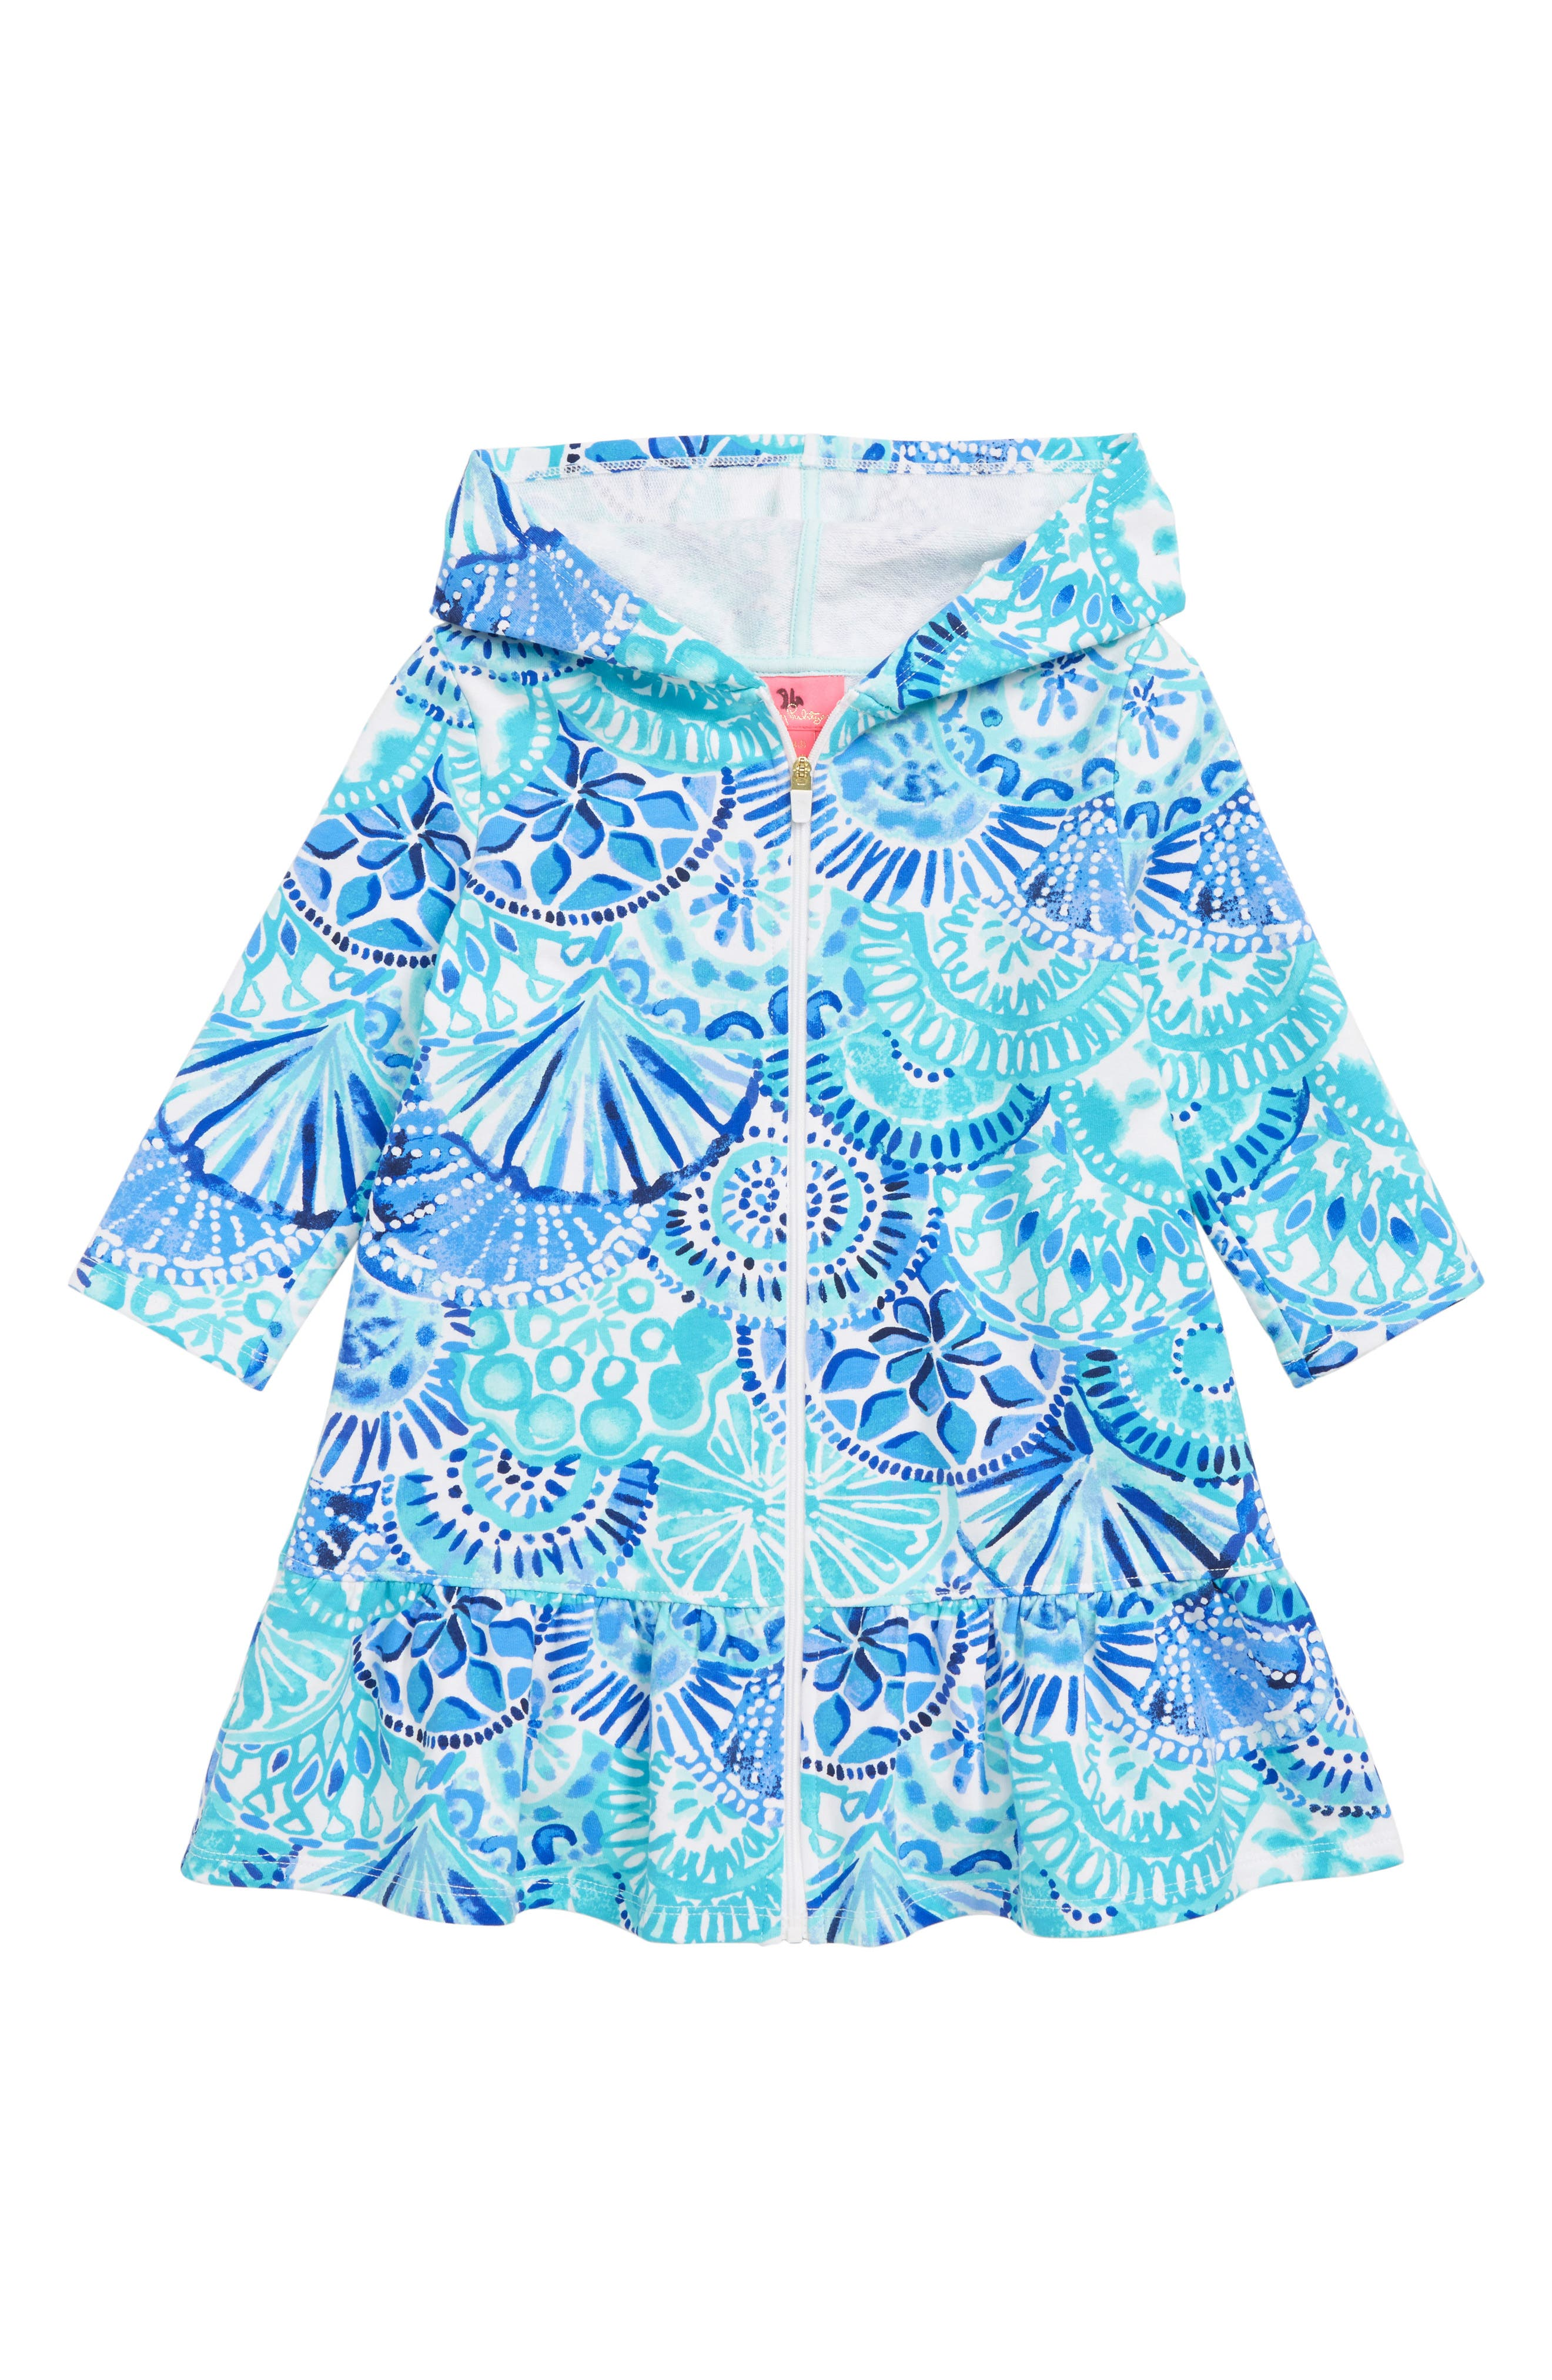 Cooke Cover-Up Dress,                             Main thumbnail 1, color,                             TURQUOISE OASIS HALF SHELL